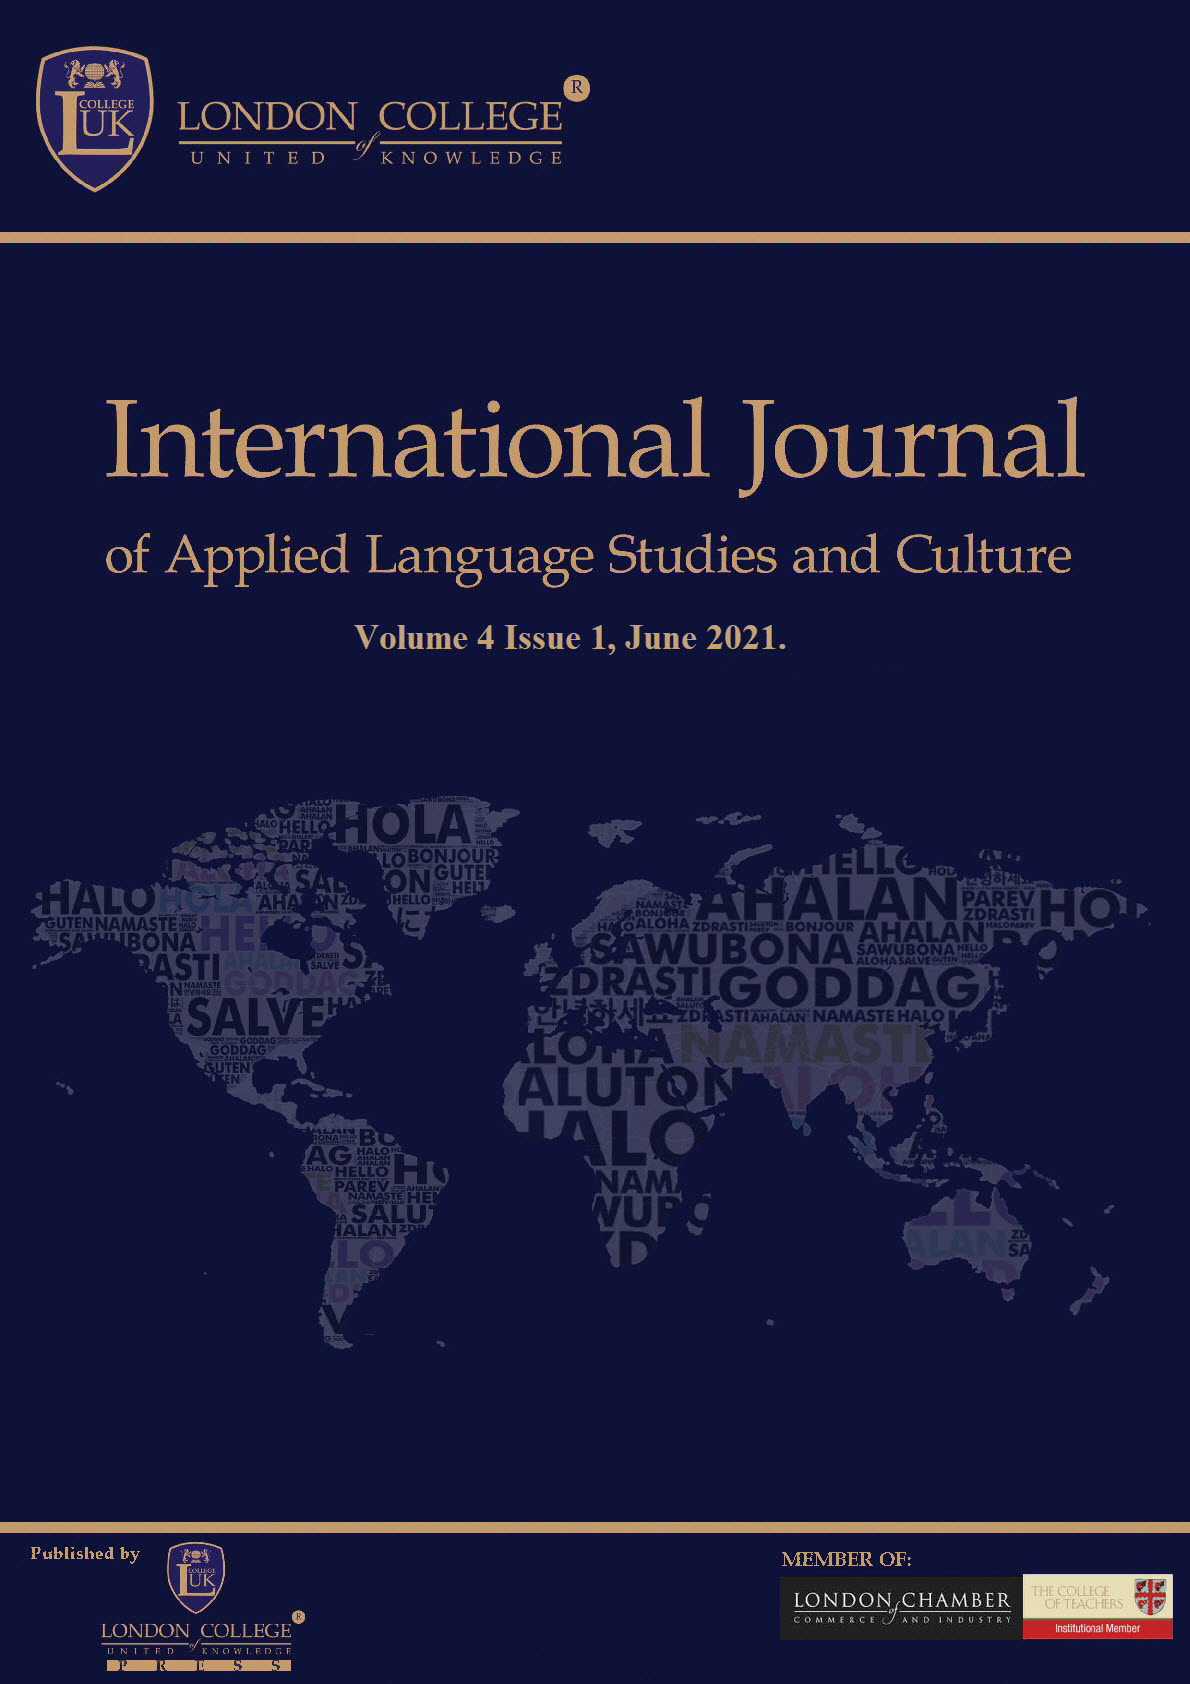 THE INTERNATIONAL JOURNAL OF APPLIED LANGUAGE STUDIES AND CULTURE (IJALSC)